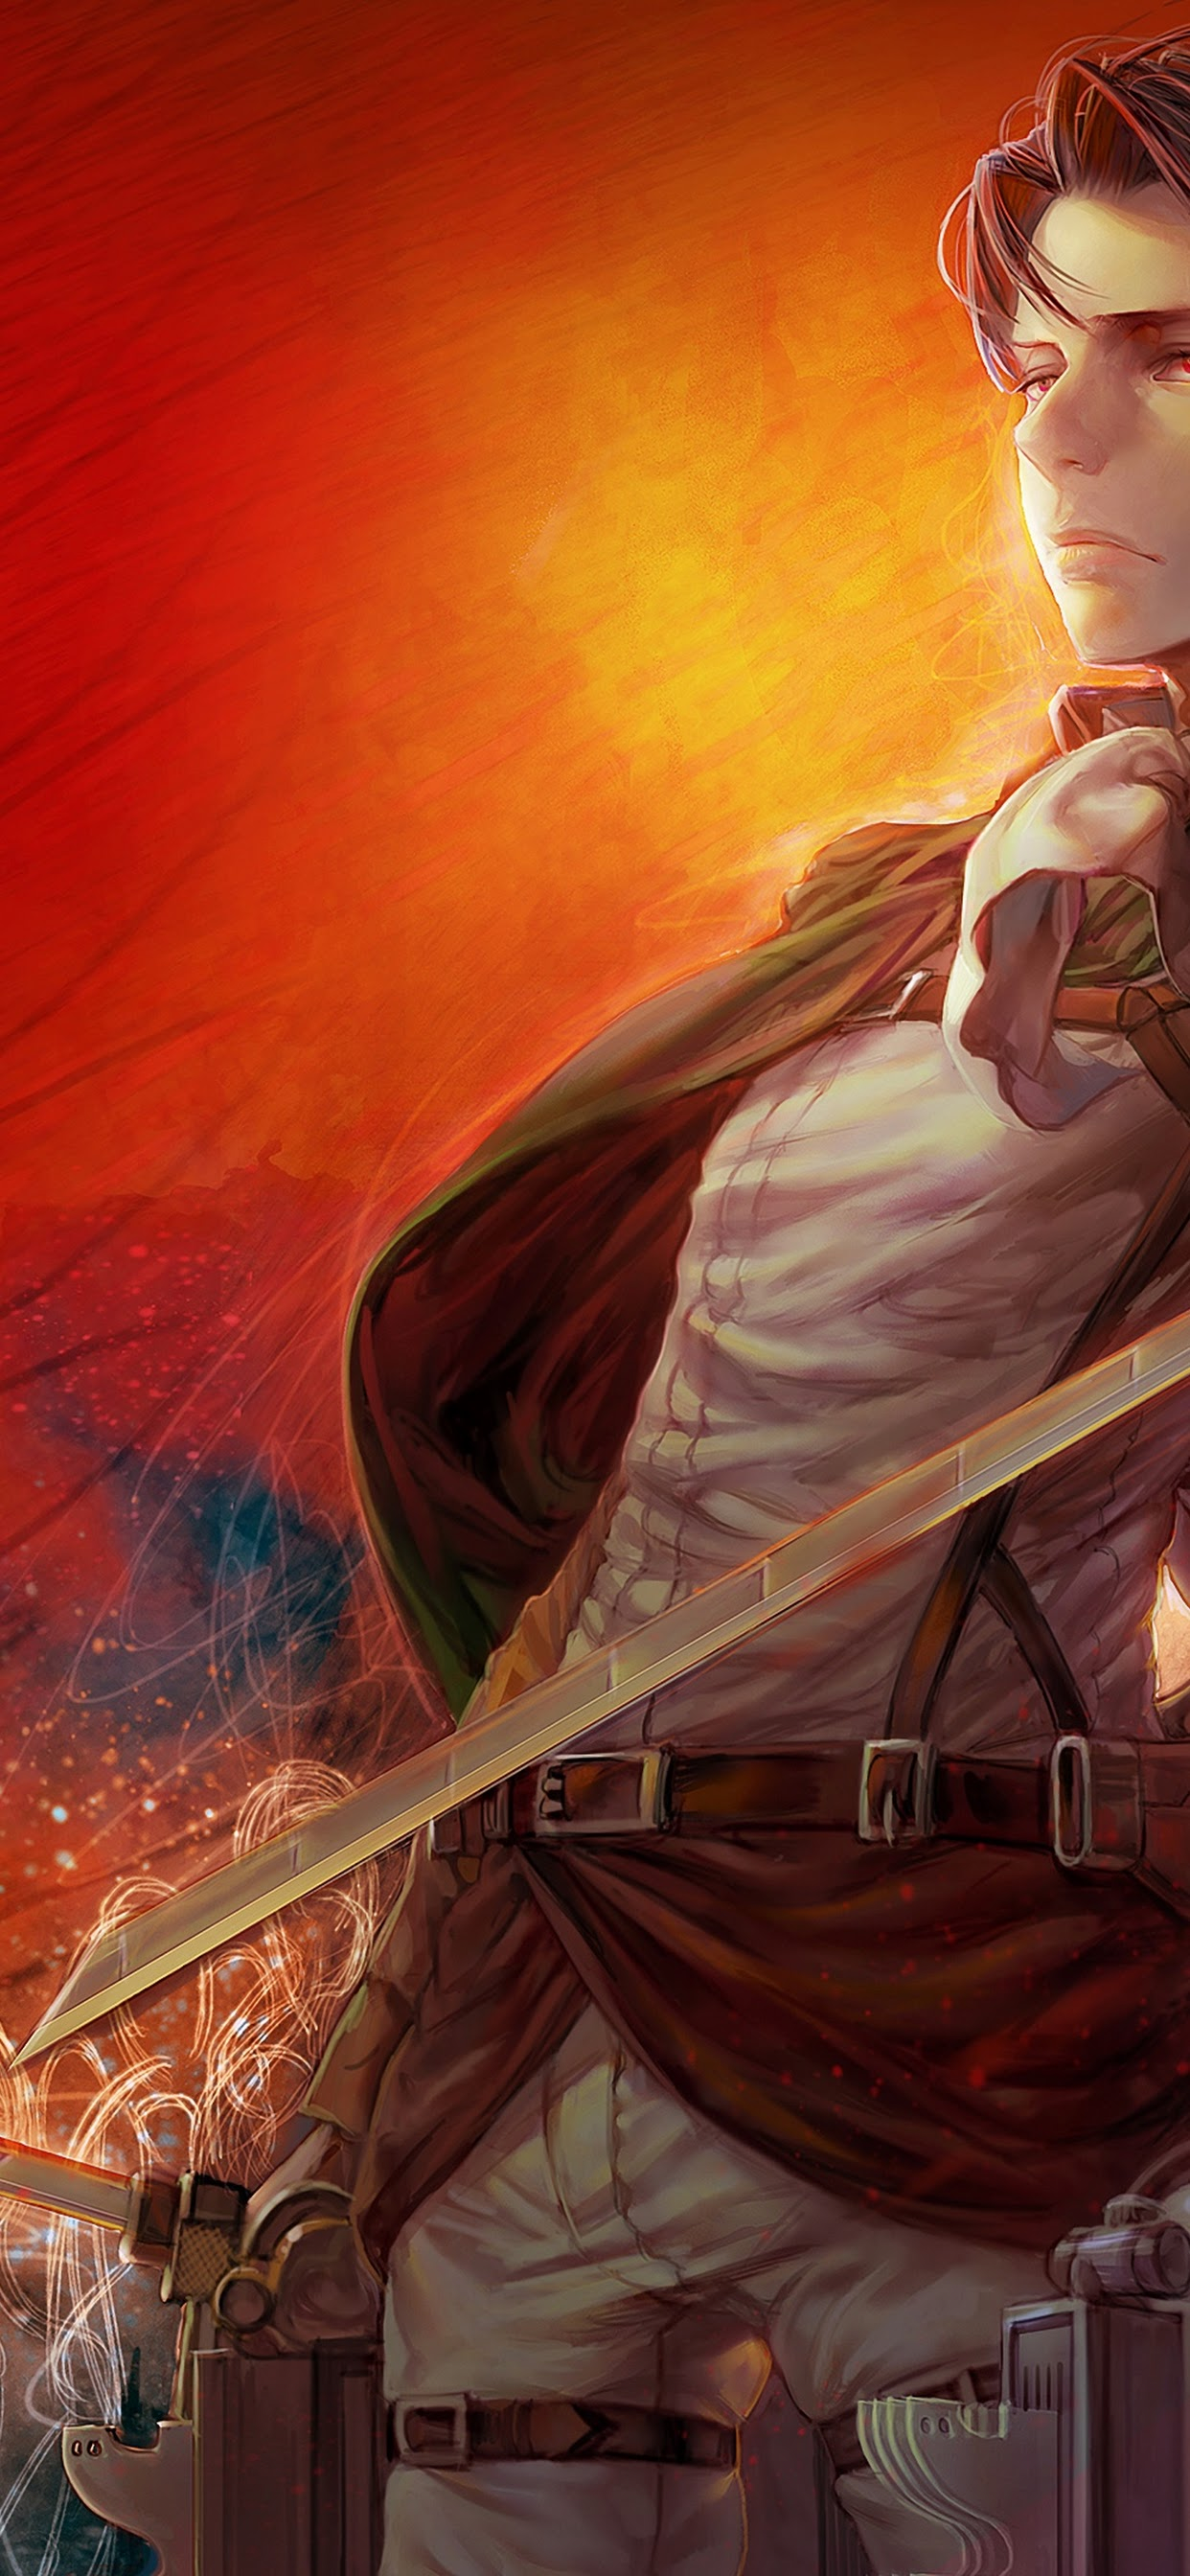 Attack On Titan Levi Wallpapers Kolpaper Awesome Free Hd Wallpapers